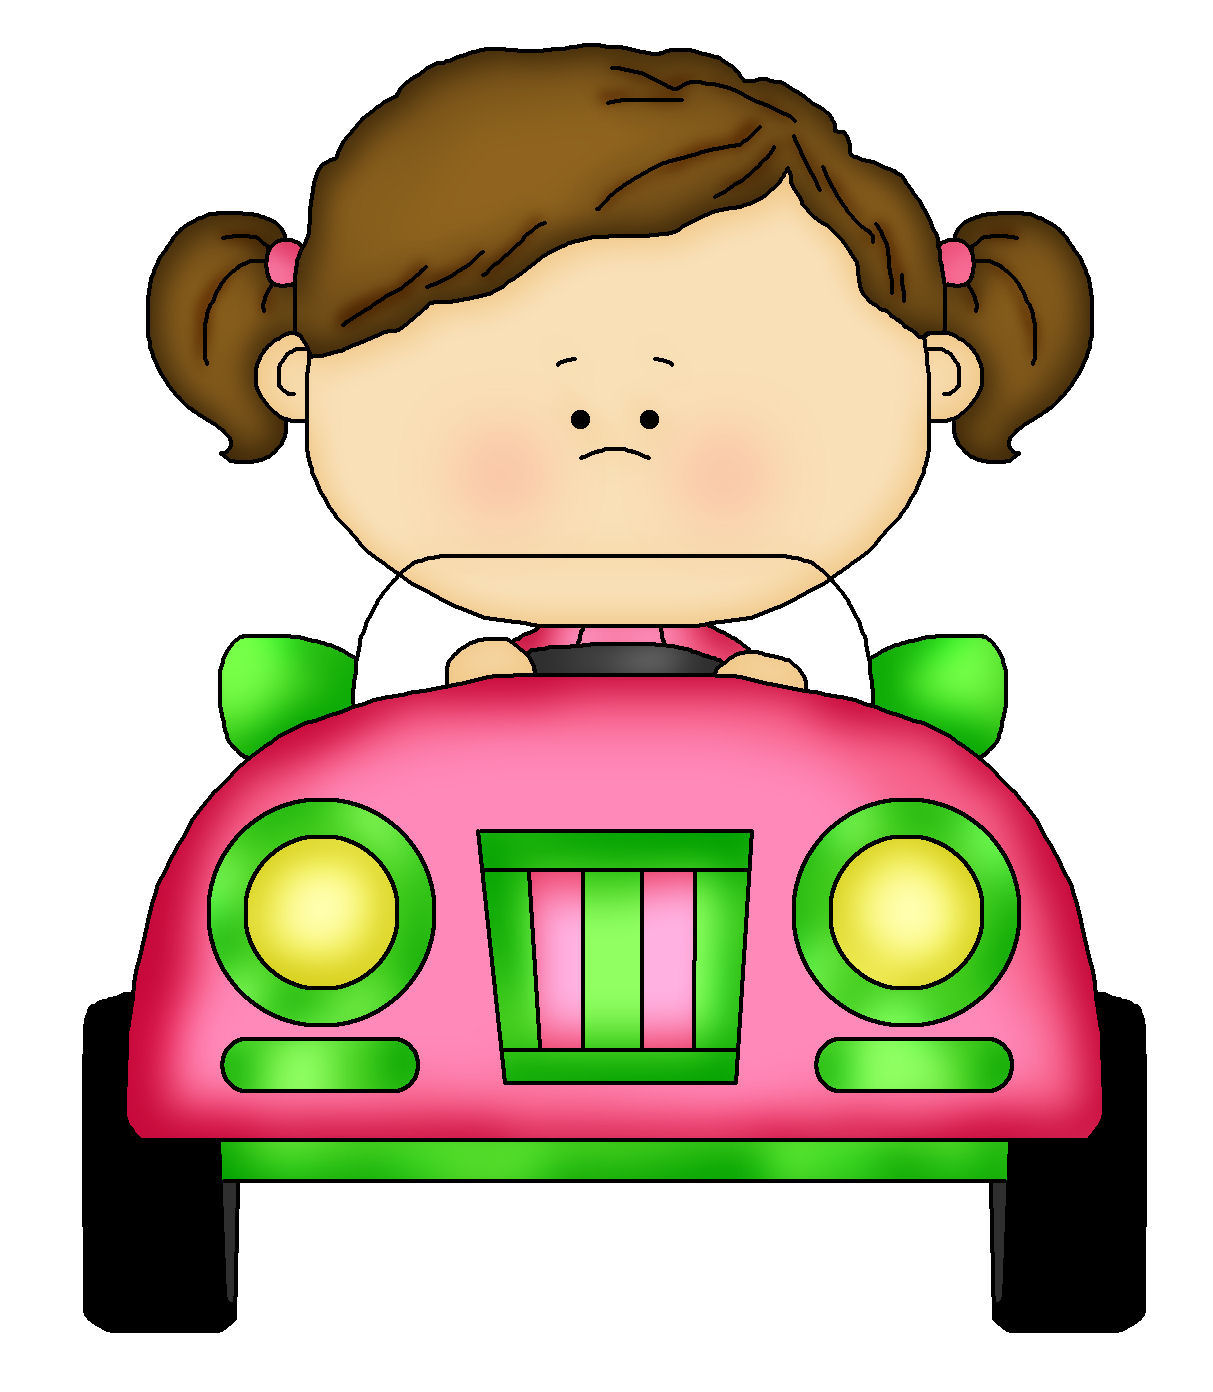 Ferrari clipart kid car Clip Red Clip art Red